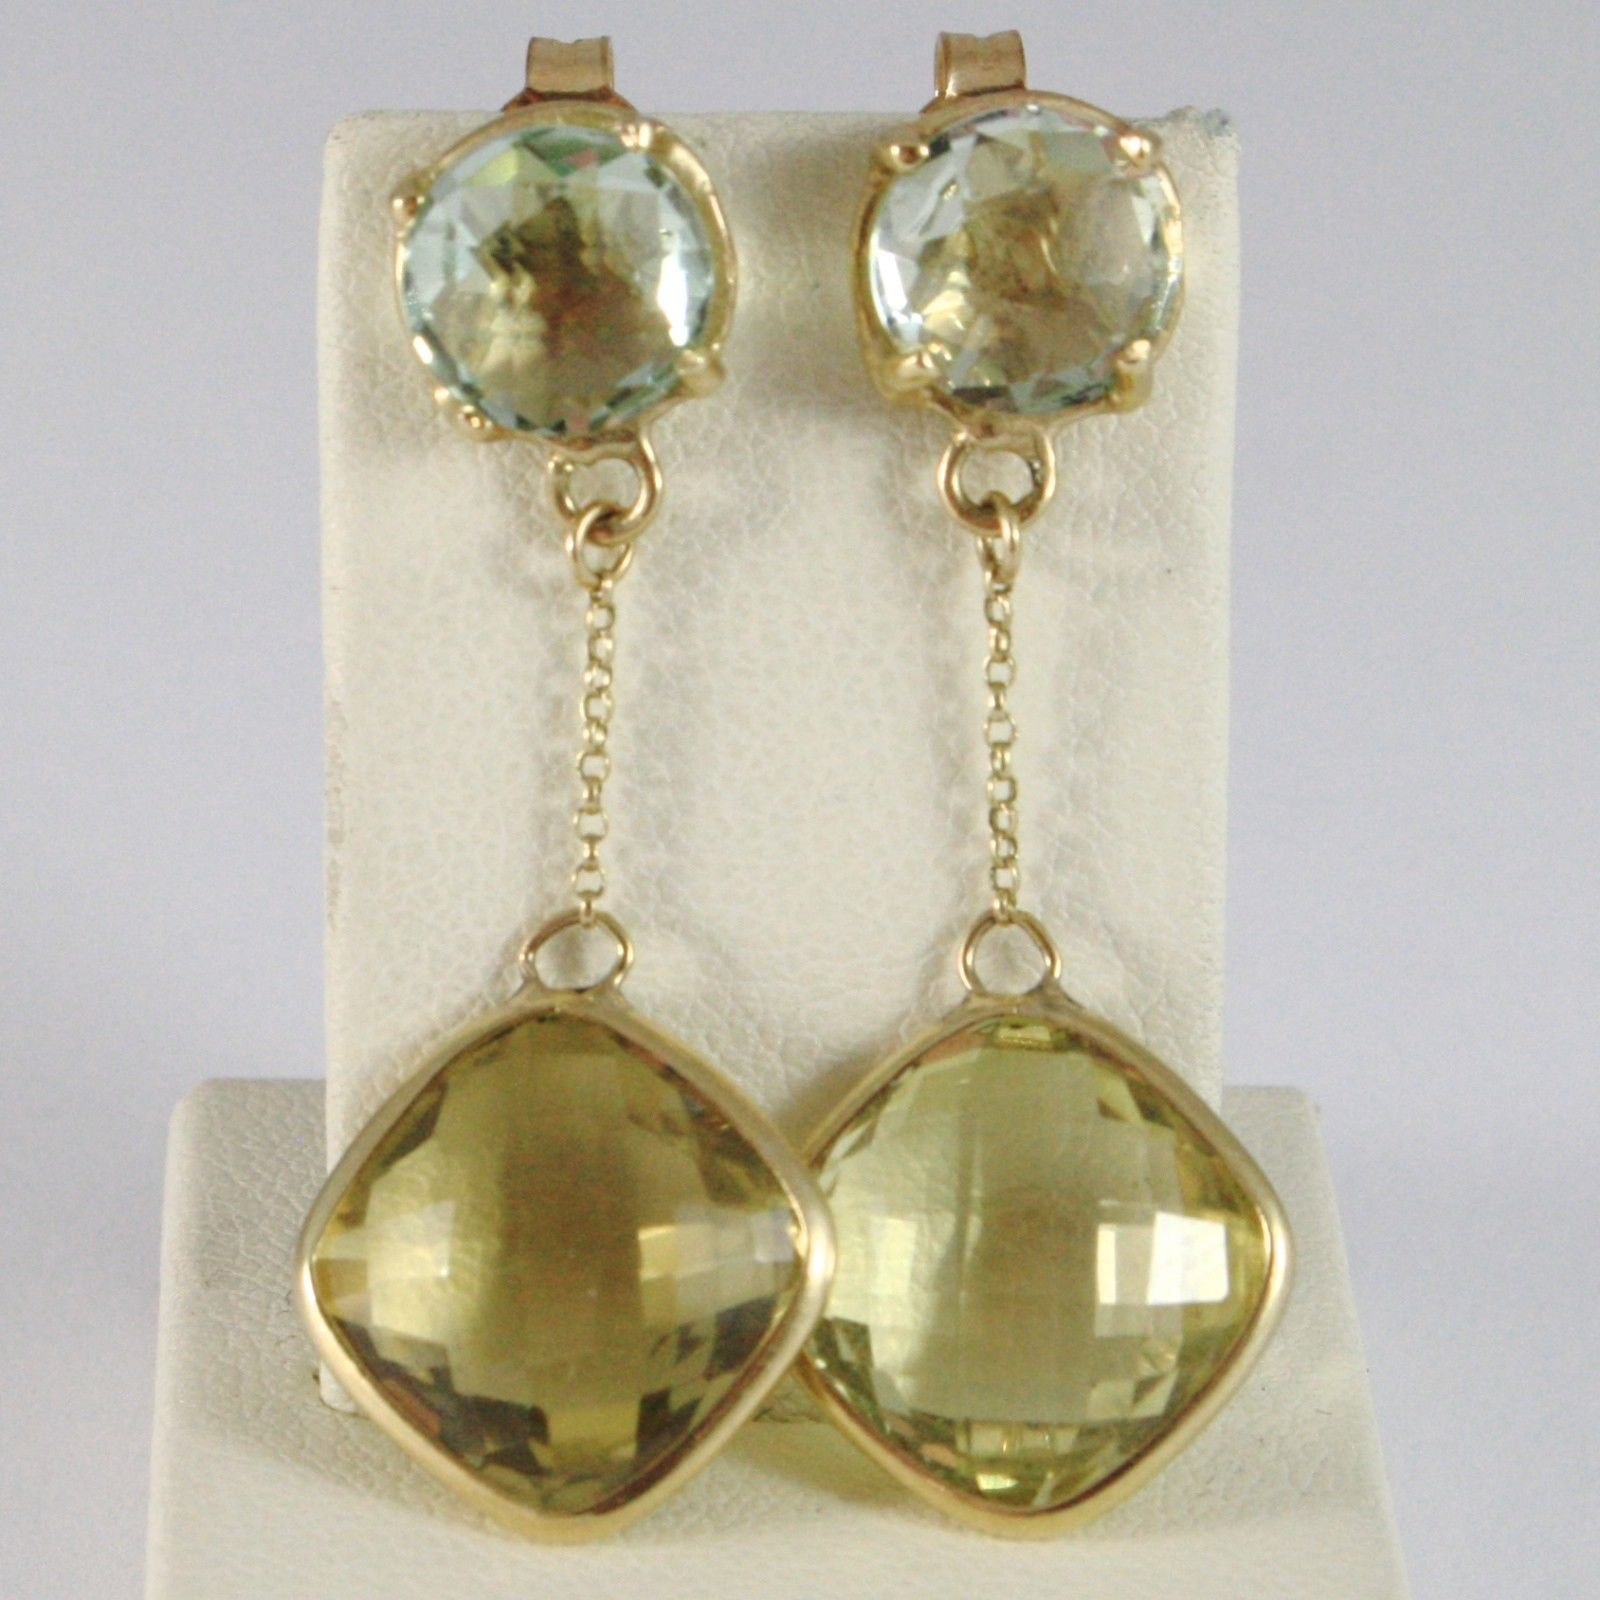 9K YELLOW GOLD PENDANT EARRINGS, CUSHION YELLOW CITRINE AND GREEN PRASIOLITE